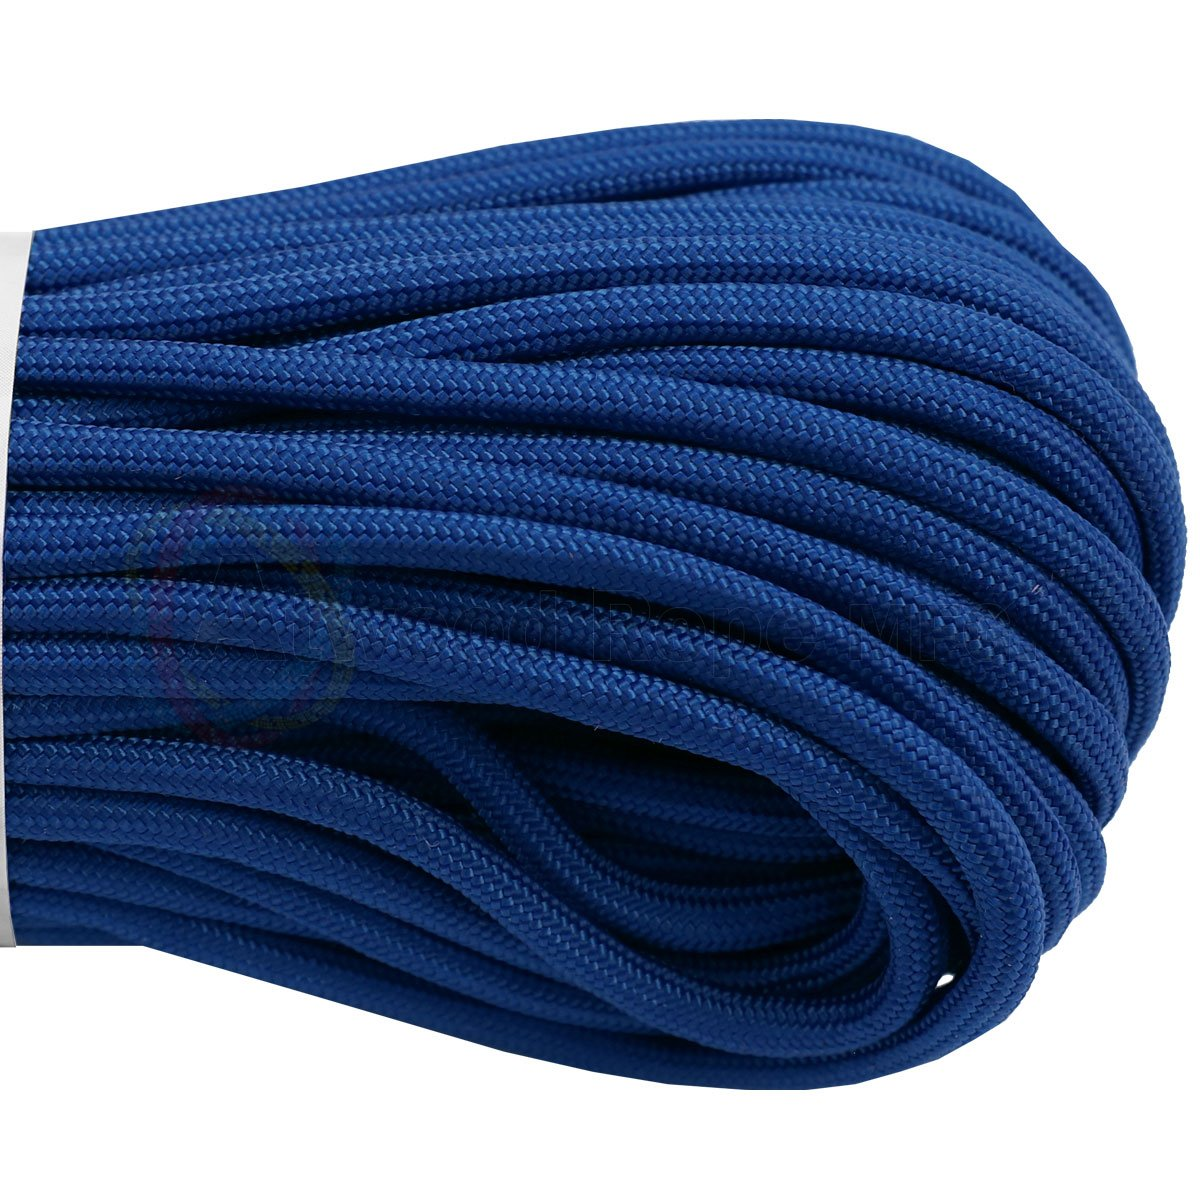 Atwood 550 Paracord - Royal Blue